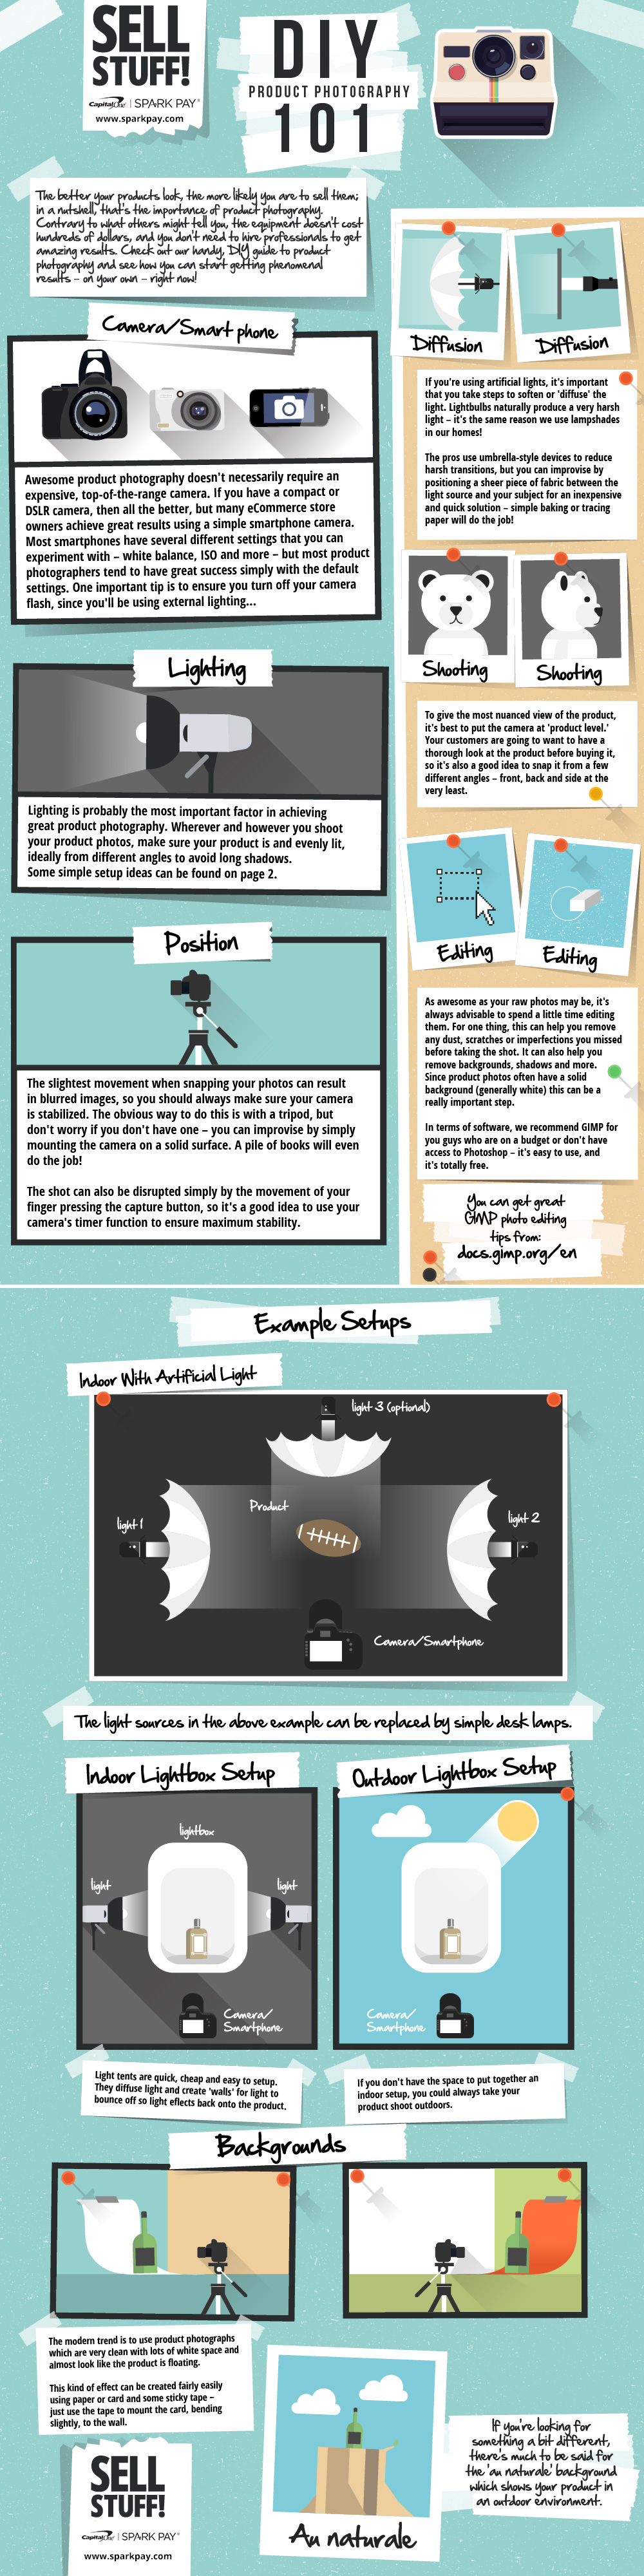 5 Tips for Better DIY Ecommerce Product Photos + Infographic